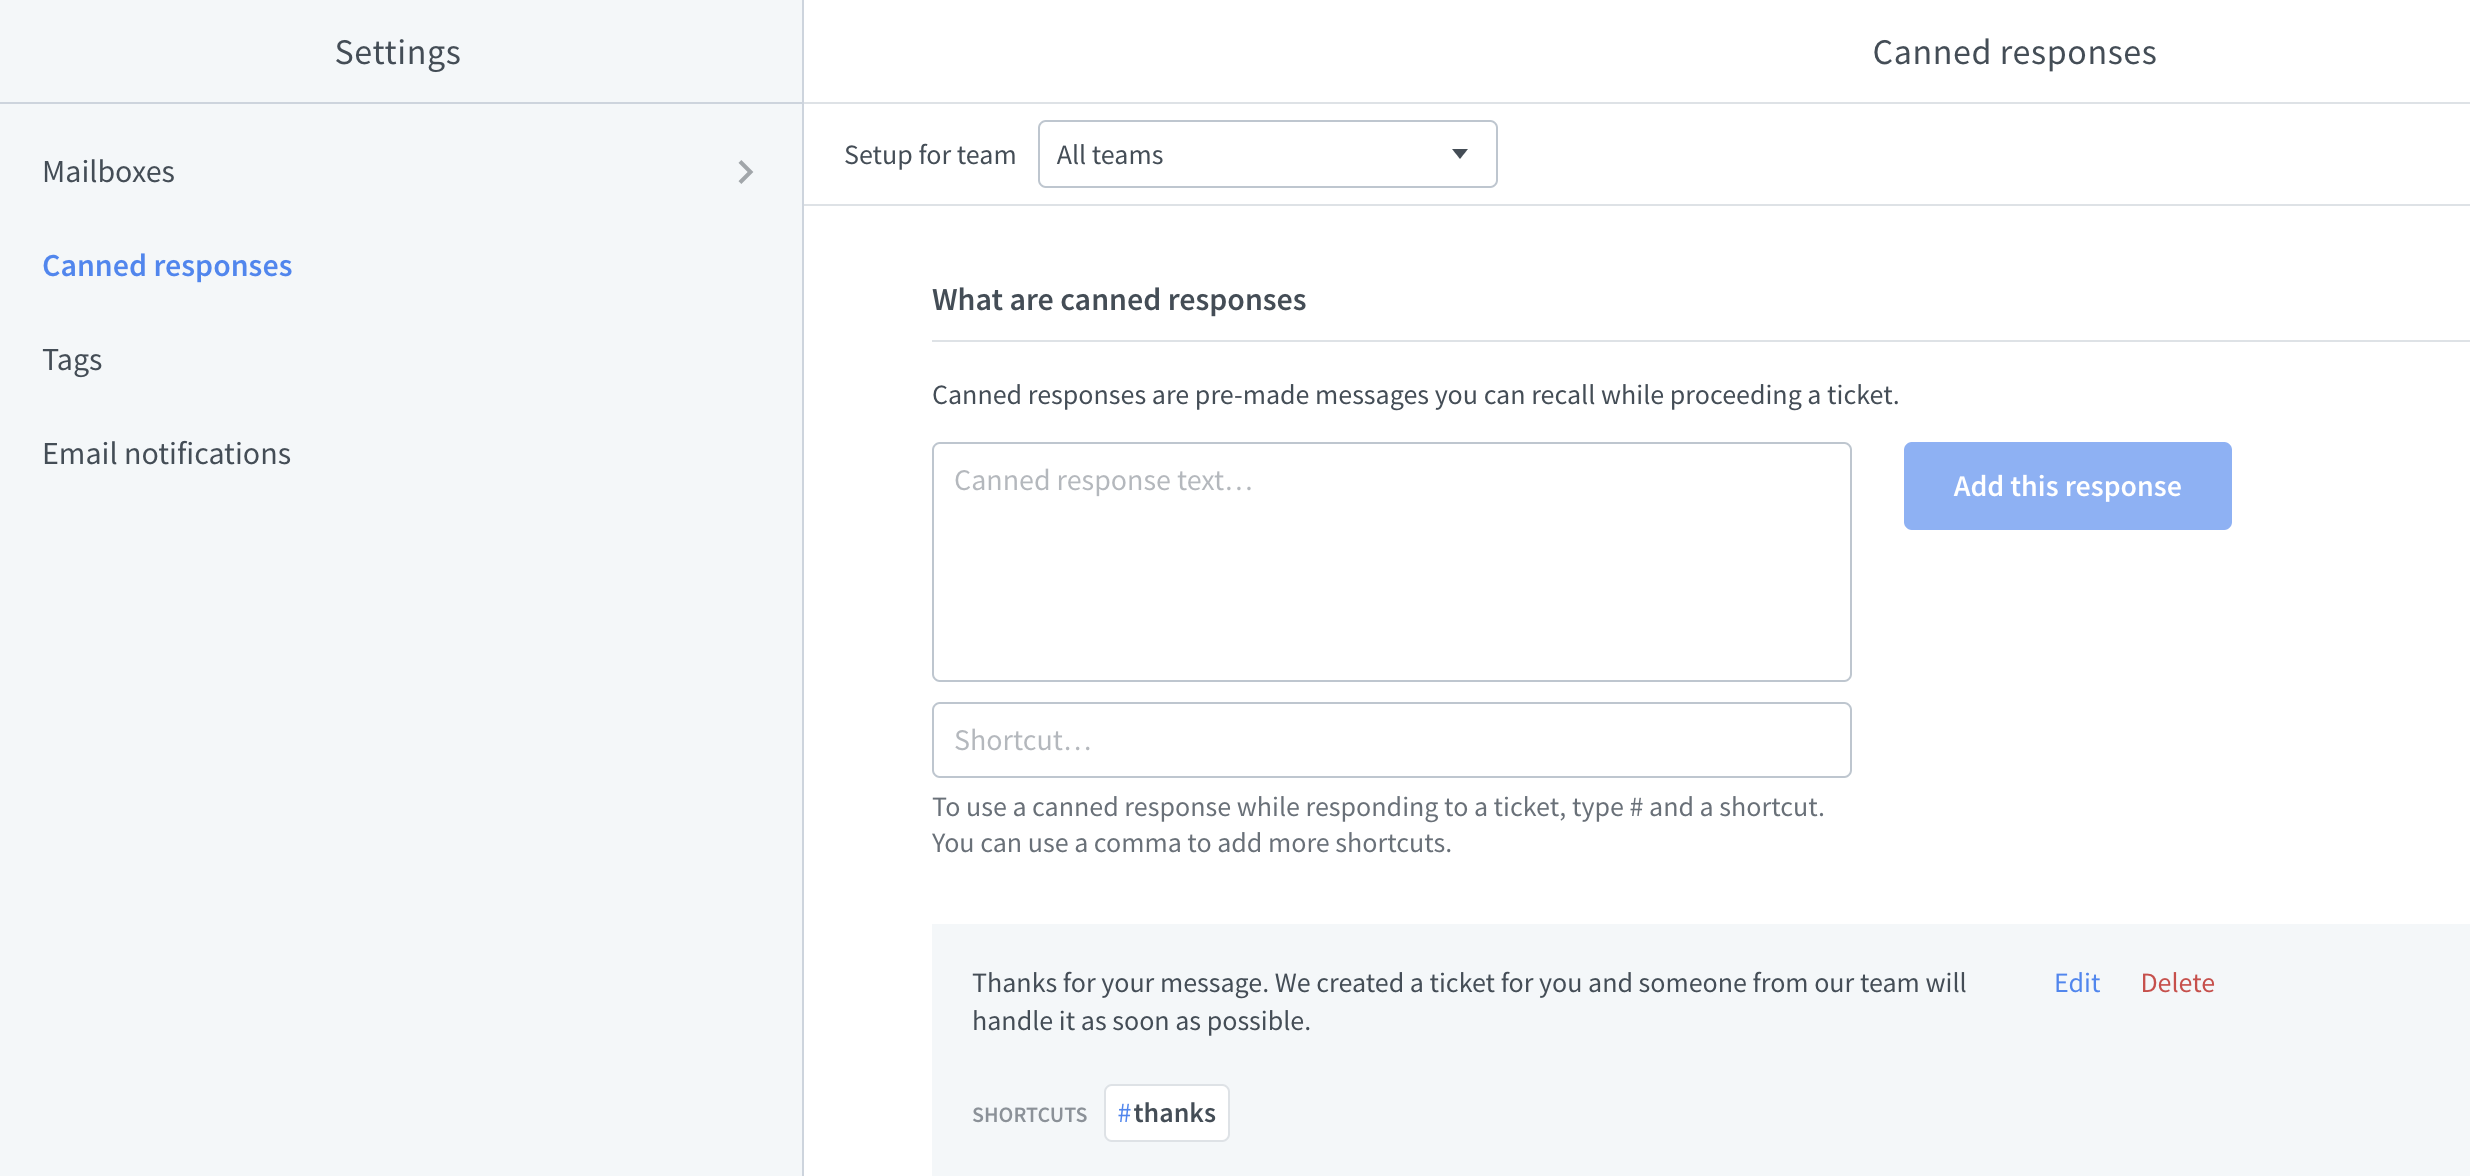 Managing canned responses